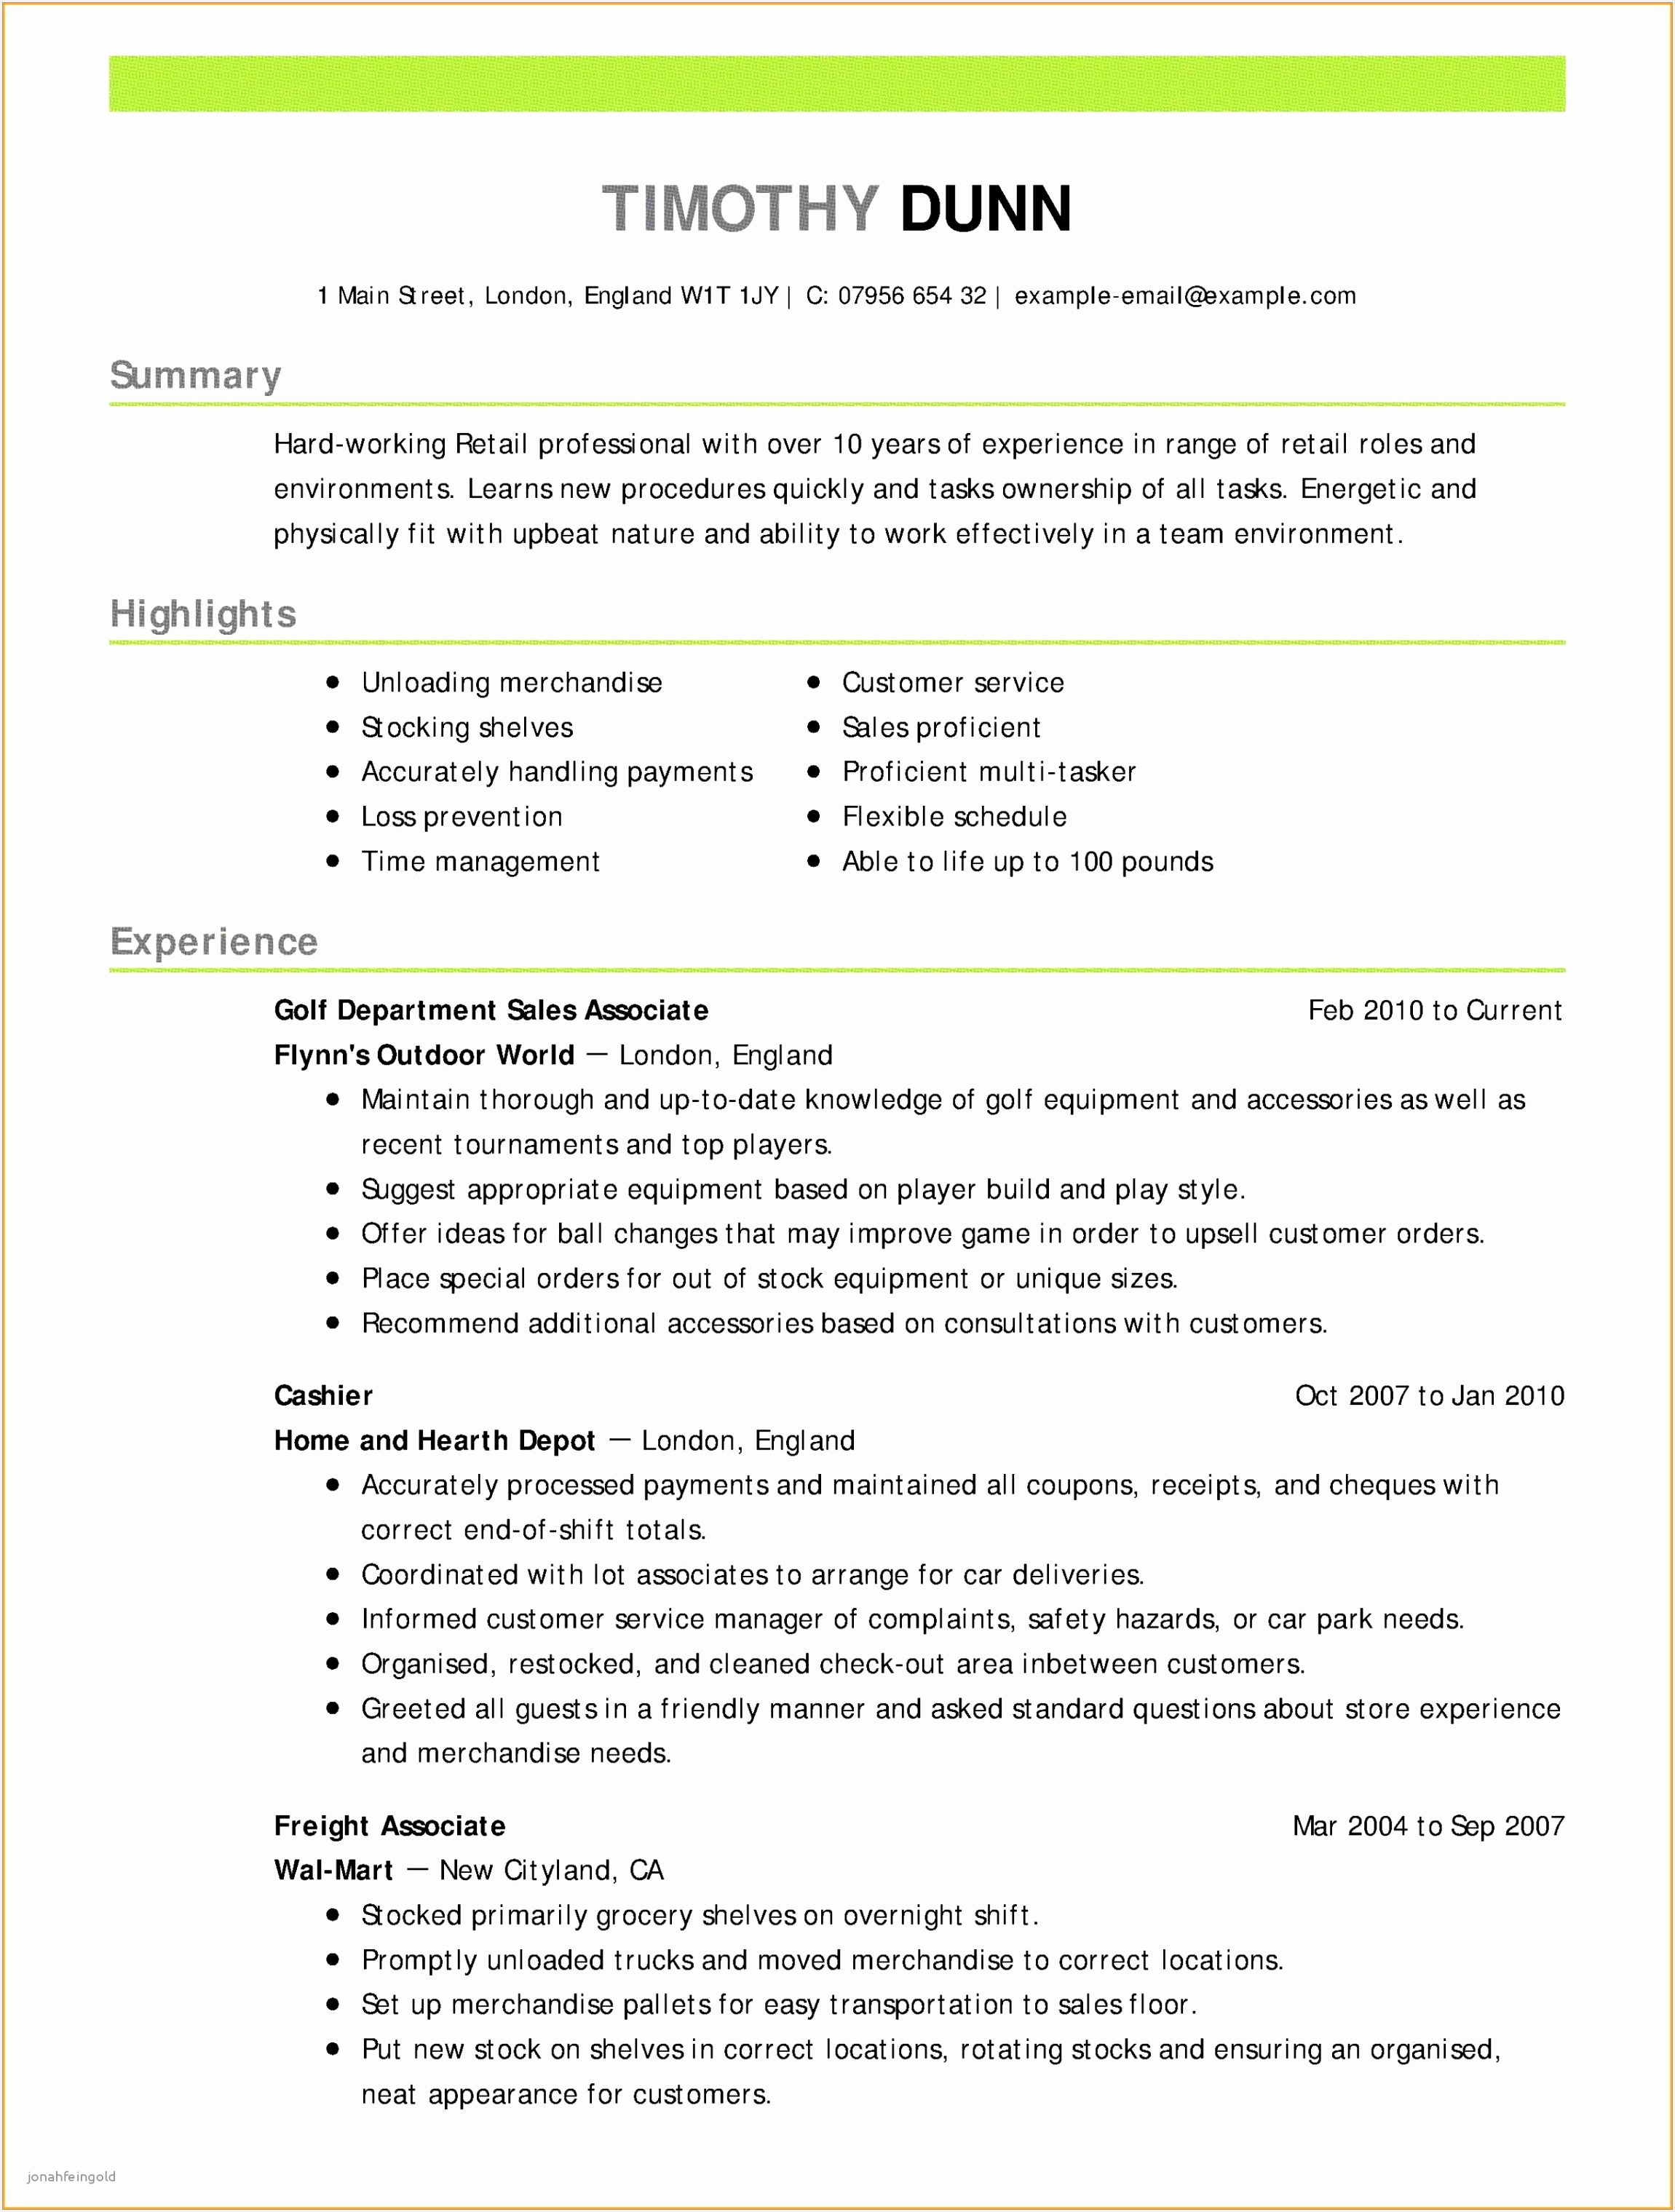 Examples Resumes for Jobs Favnh Fresh It Resume Job Descriptions Examples New It Resume Skills Unique Of Examples Resumes for Jobs A0k4j Inspirational Example Job Resume Beautiful Luxury Examples Resumes Ecologist